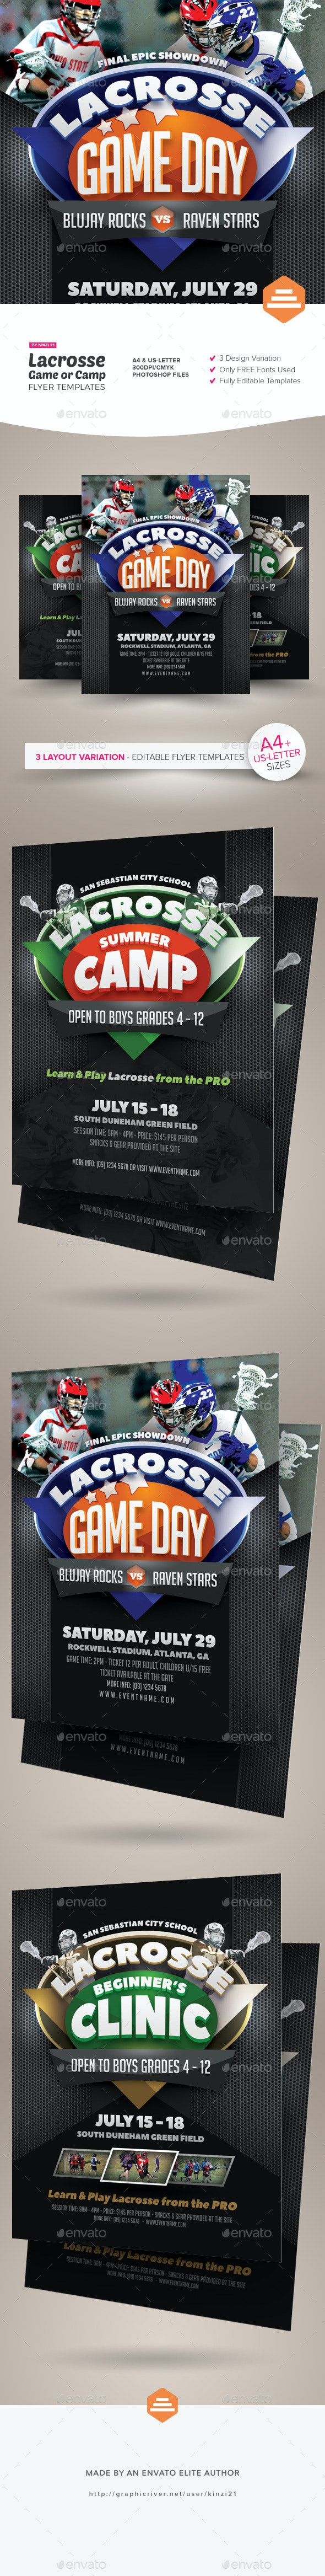 Lacrosse Game or Camp Flyer Templates - Sports Events